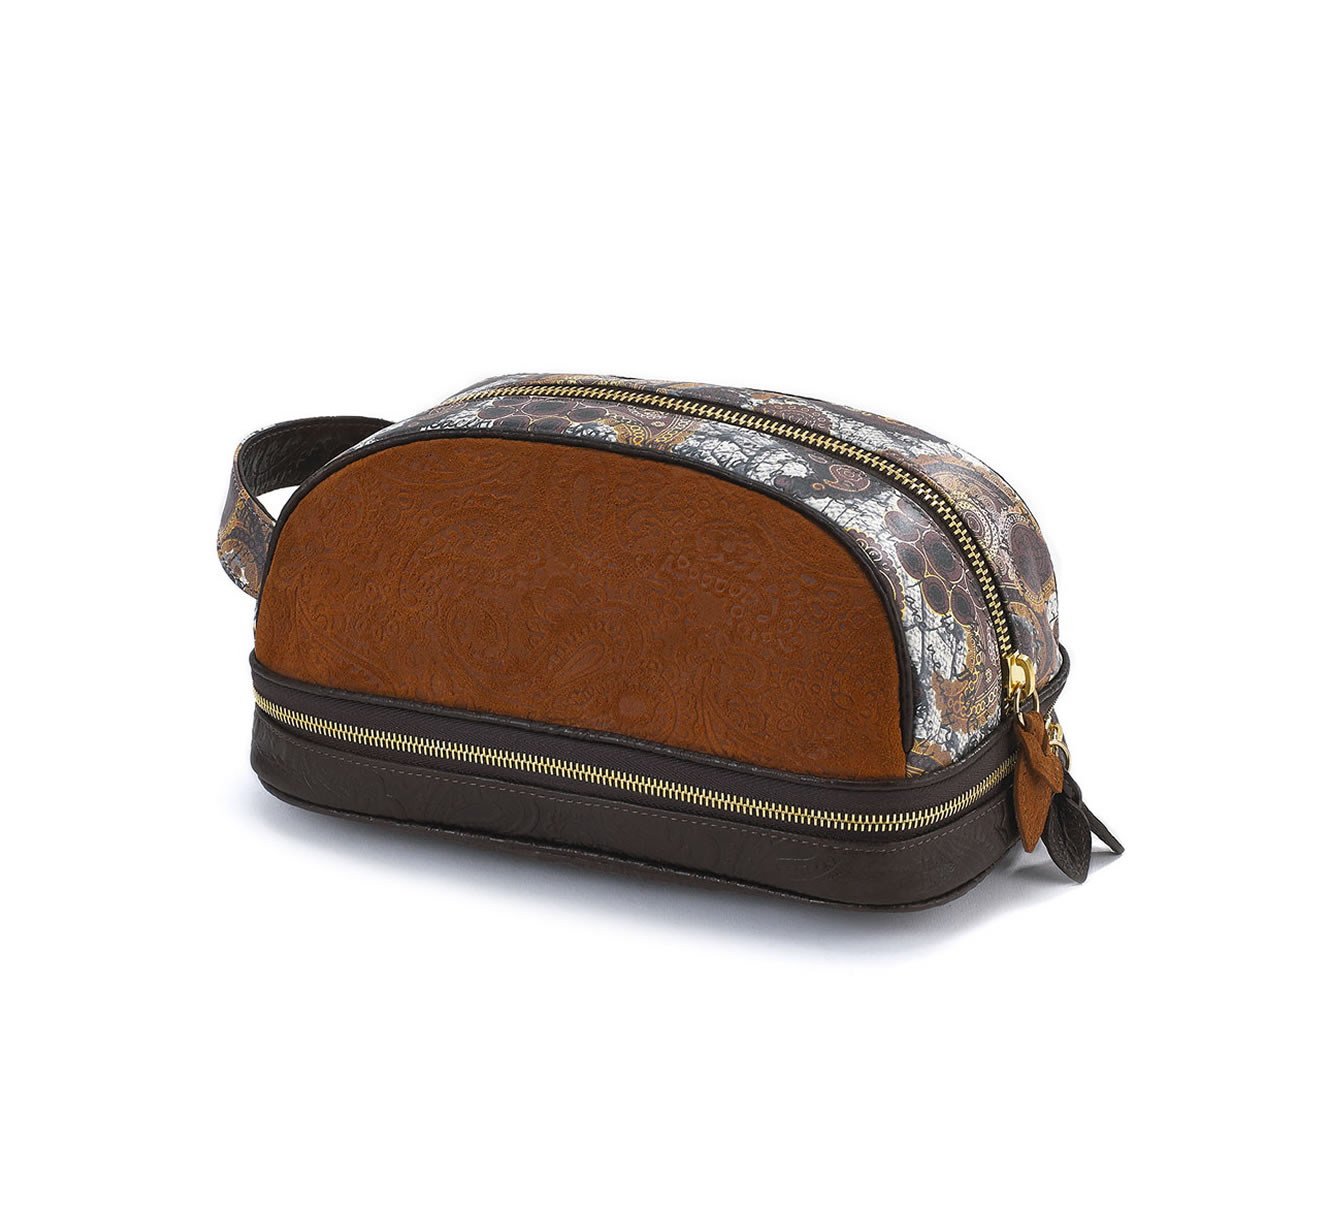 DOPP KIT GOLDEN BROWN EMBOSSED